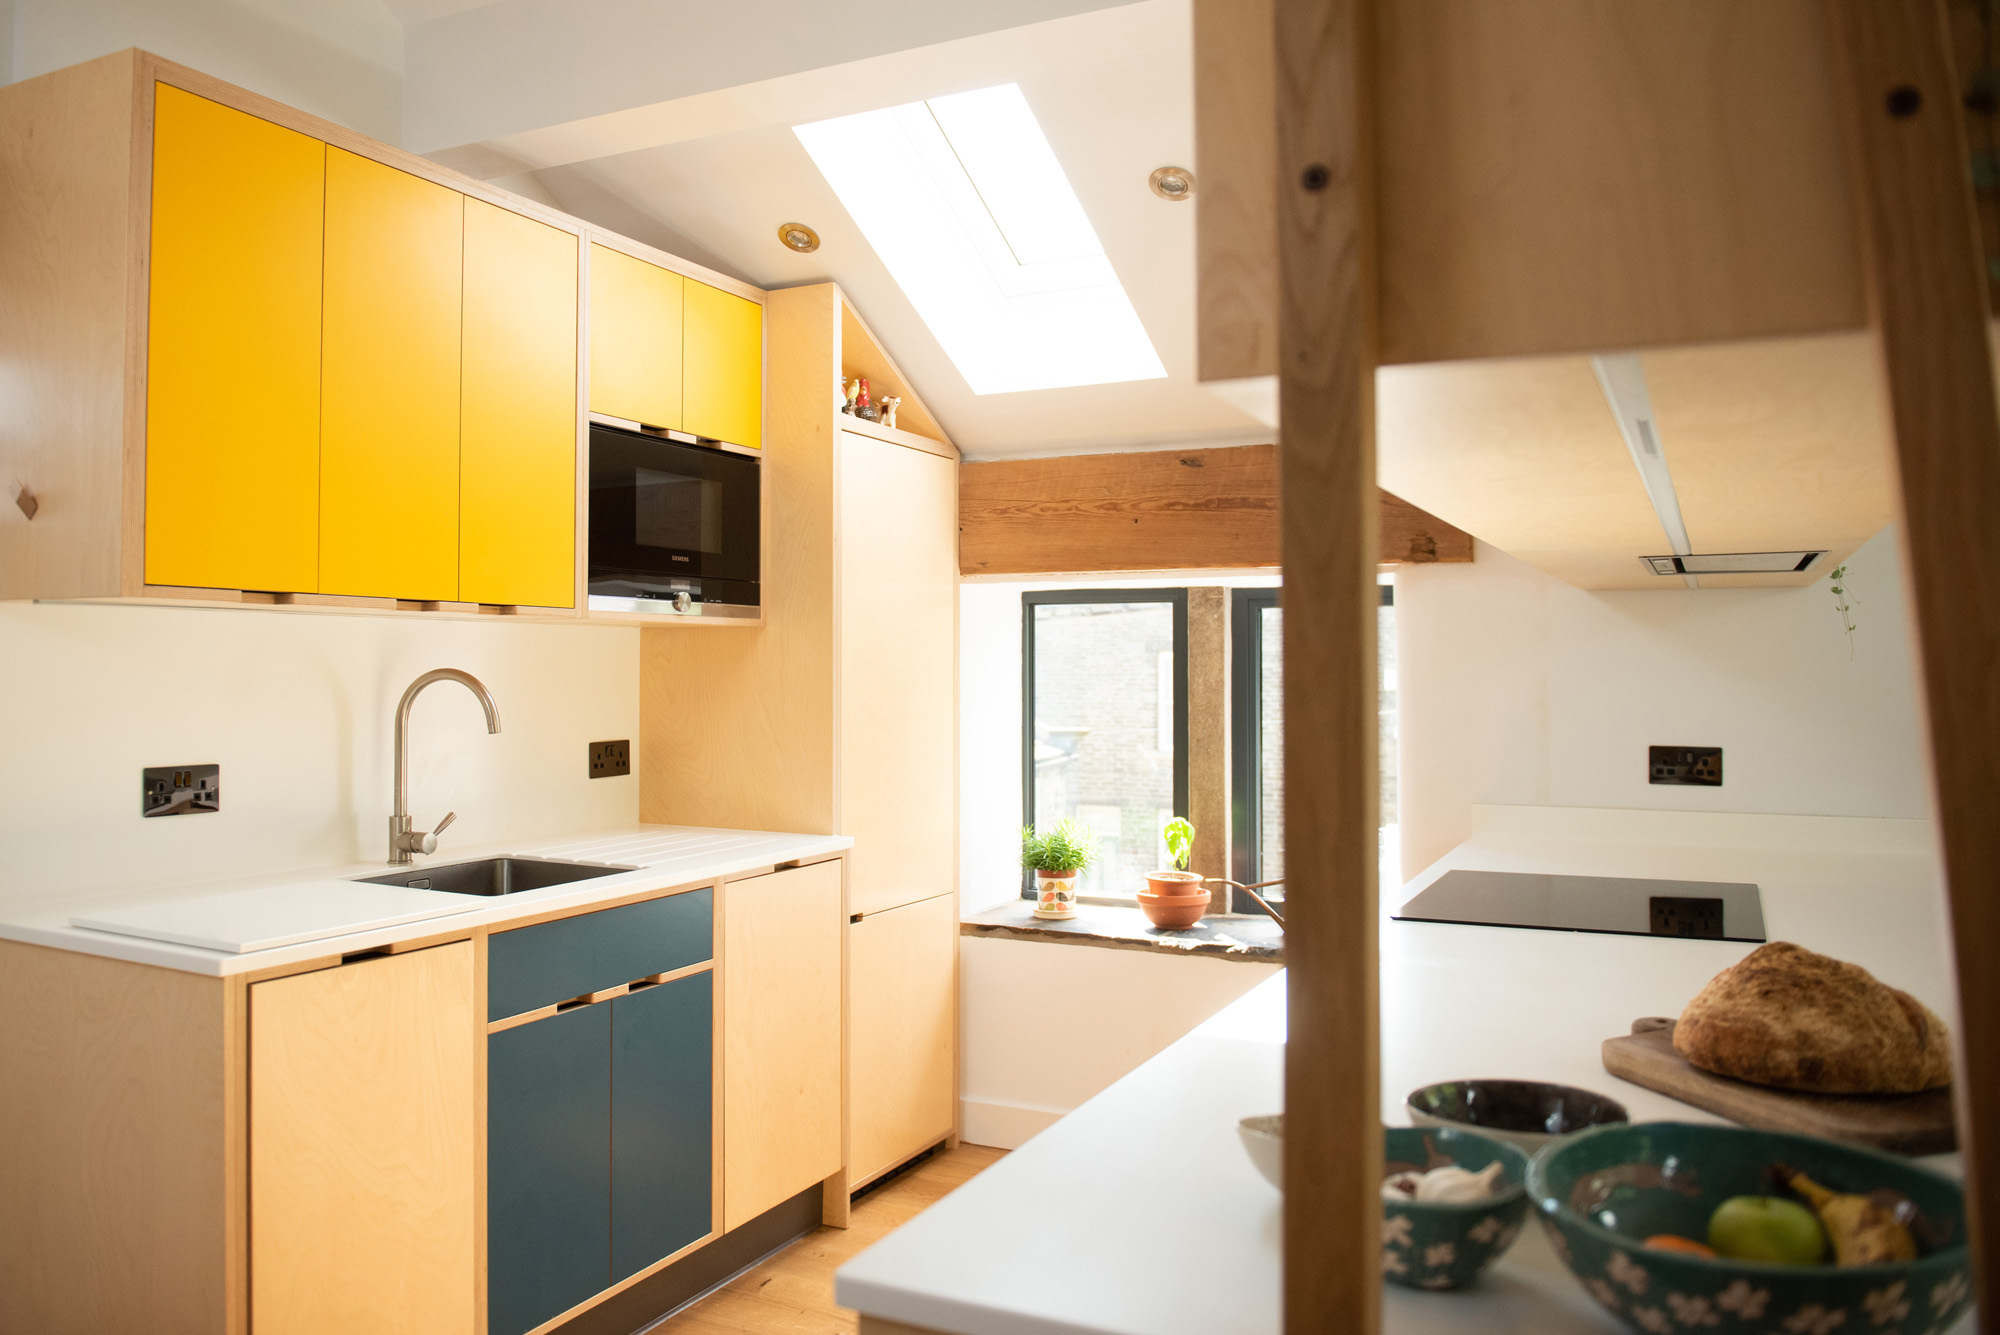 yellow and blue plywood kitchen in converted barn